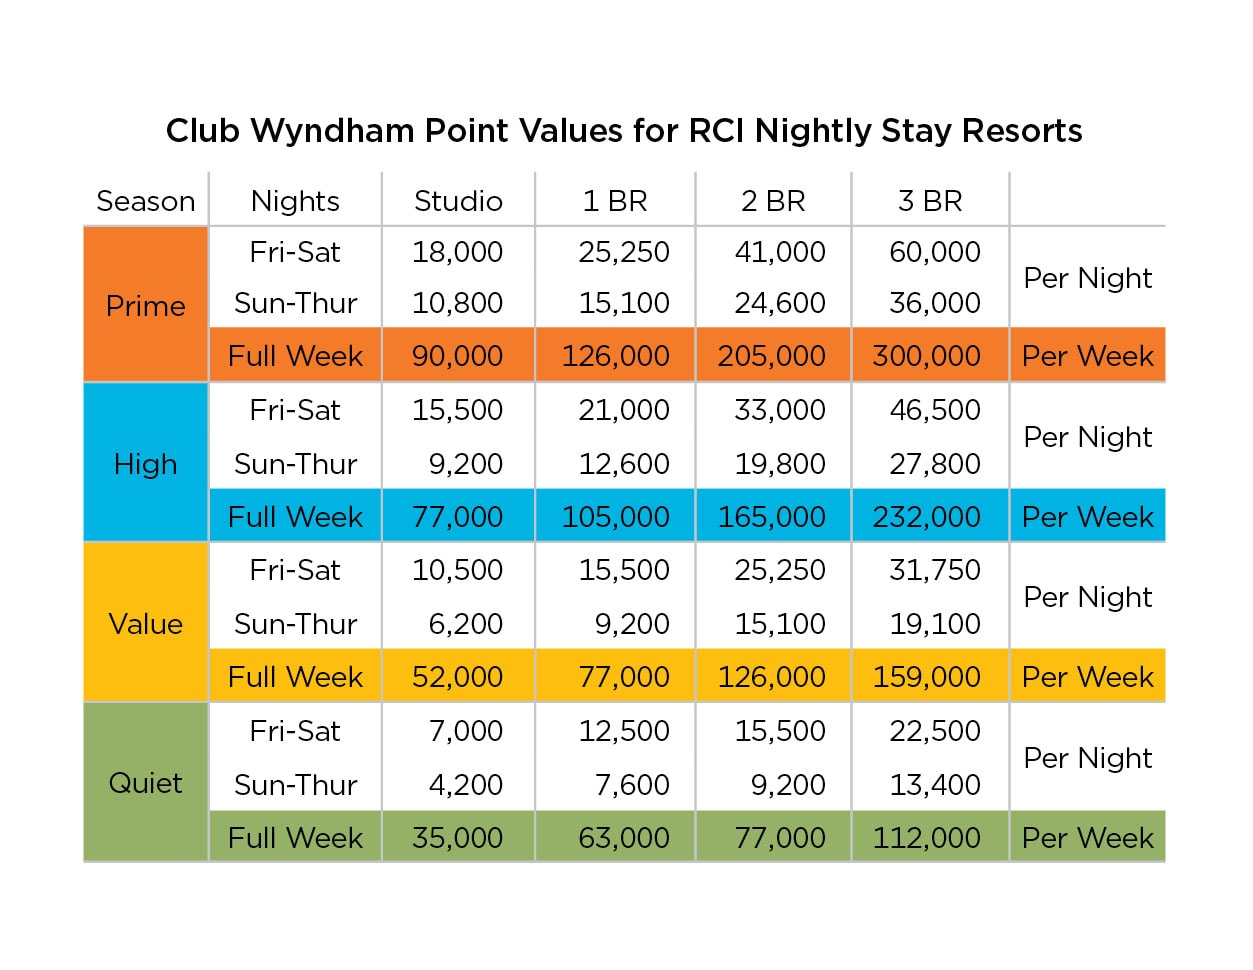 Club Wyndham Owner Resources Rci Nightly Stays Club Wyndham